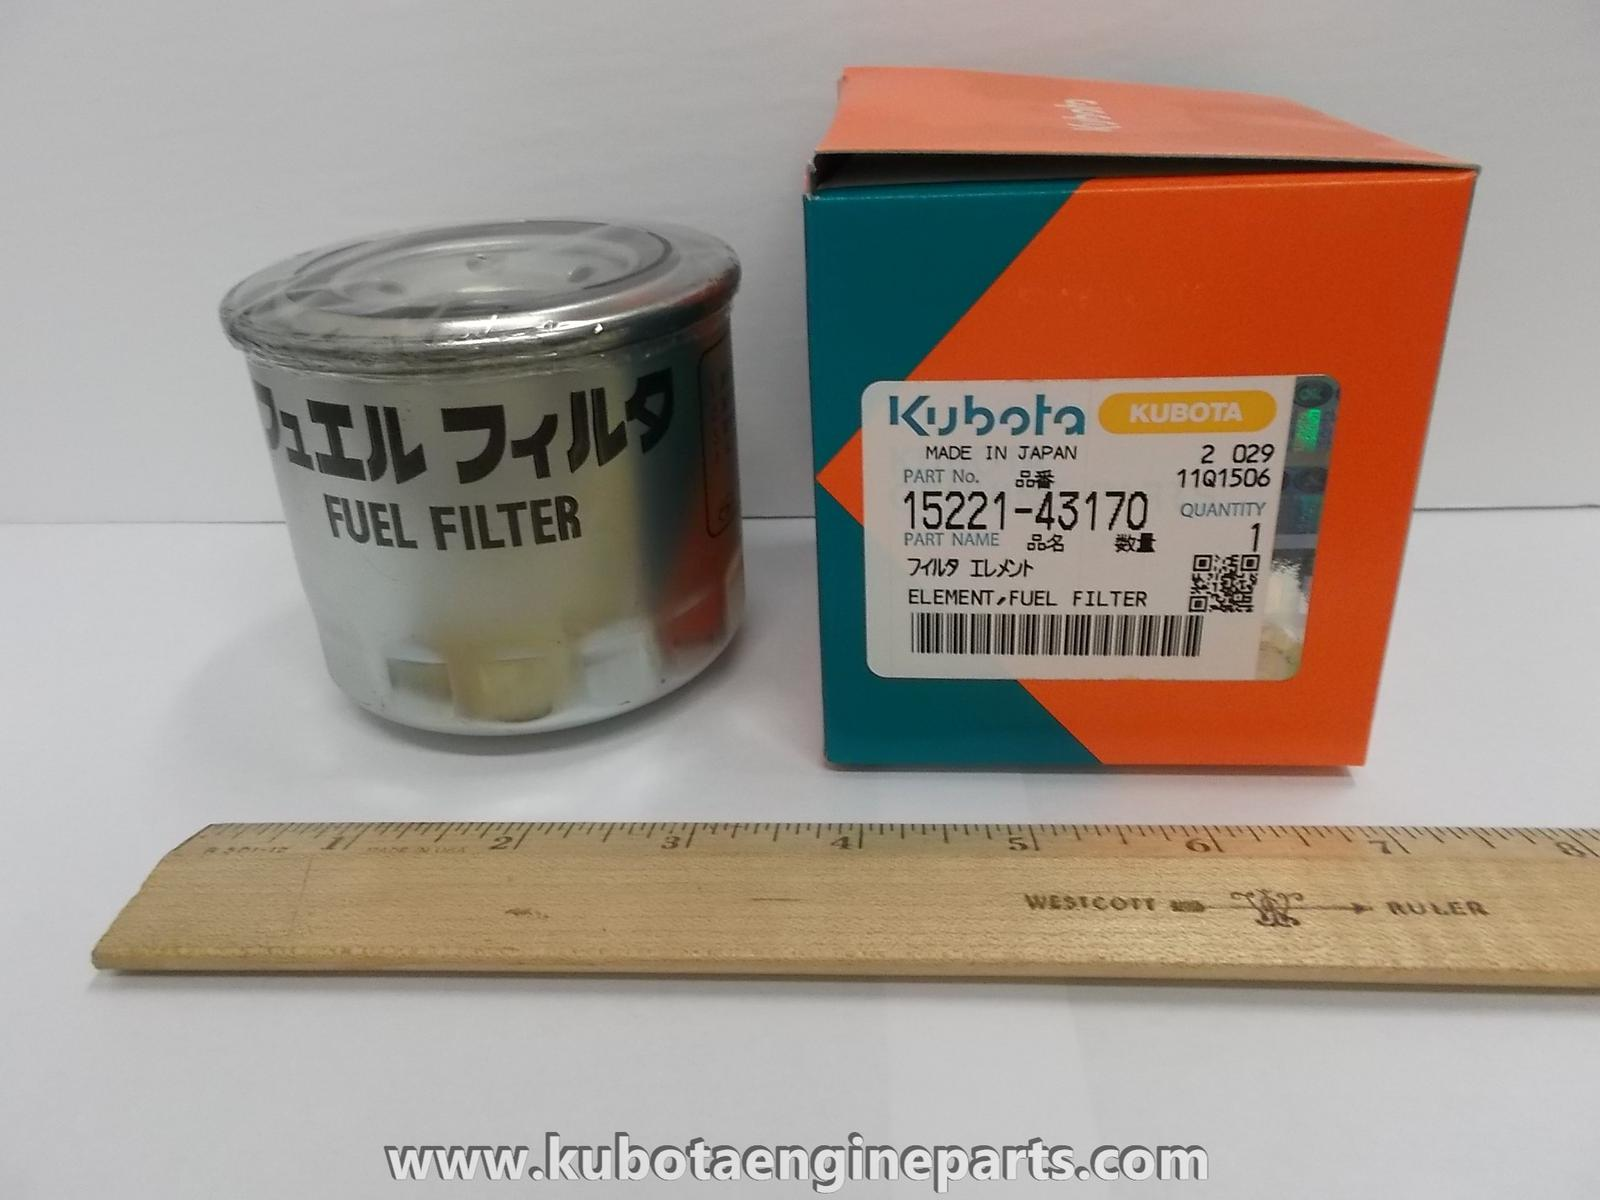 15221 43170 For Sale Kubota Engine Parts Brookville 800 443 6831 Fuel Filter Location